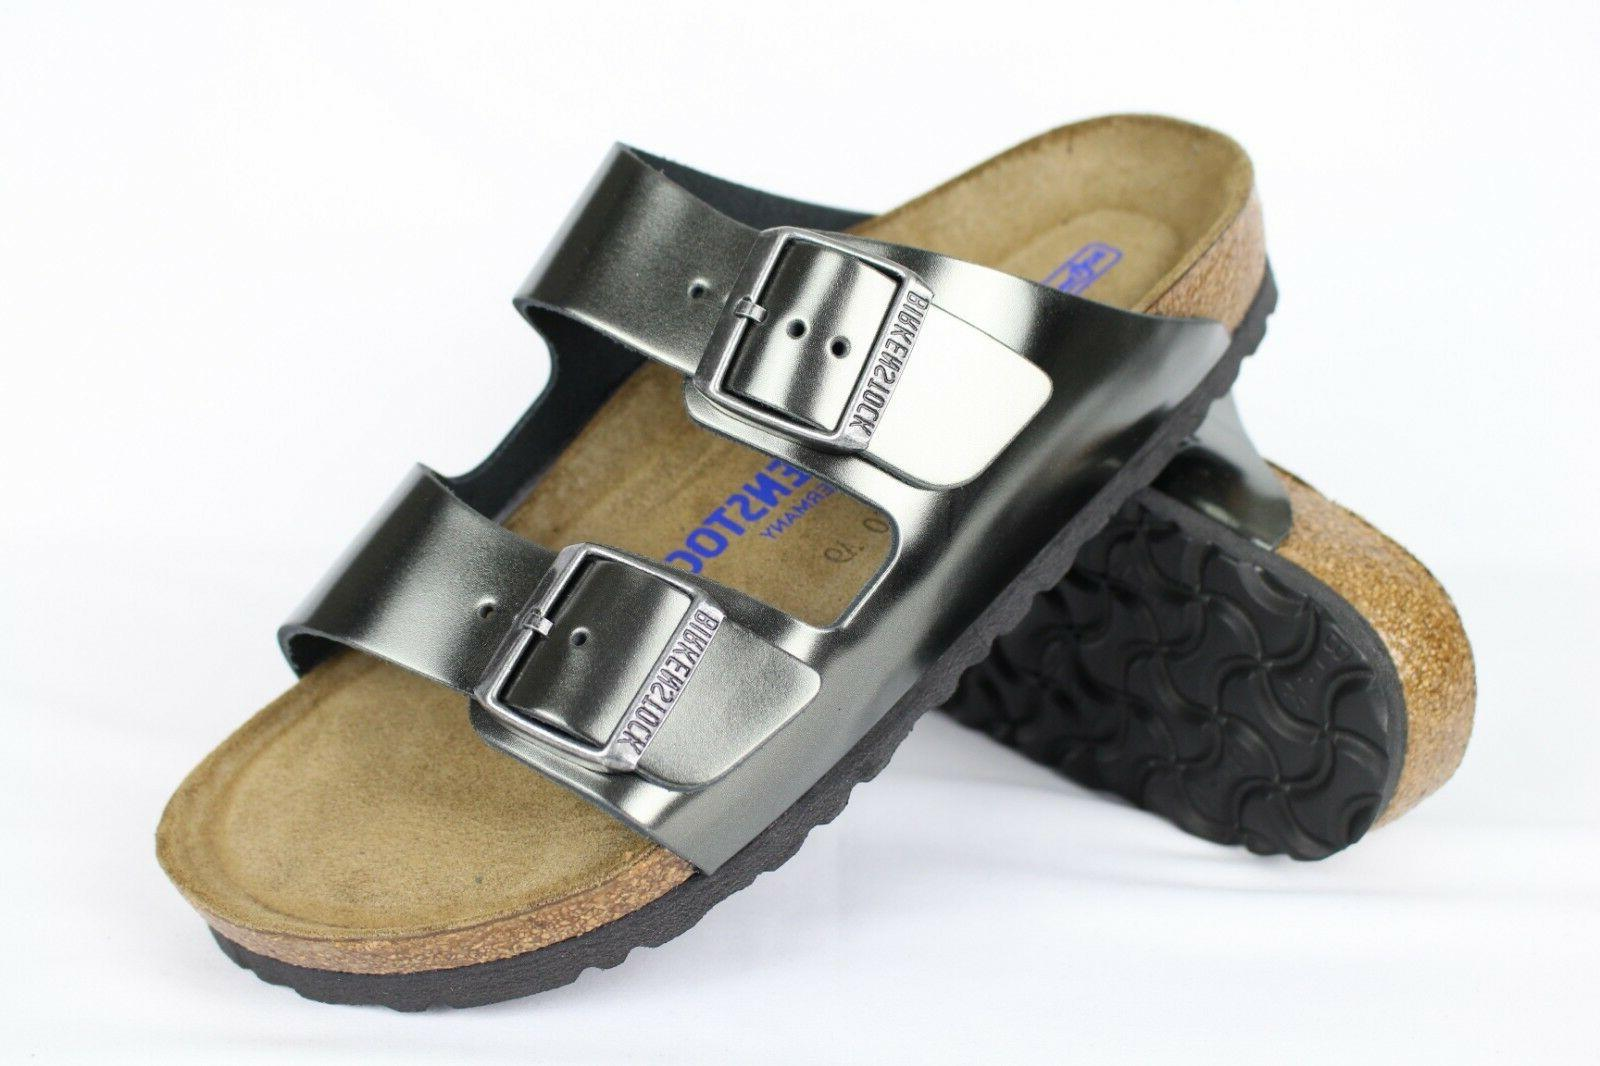 New Birkenstock Women's Arizona Soft Footbed Sandals Metalli